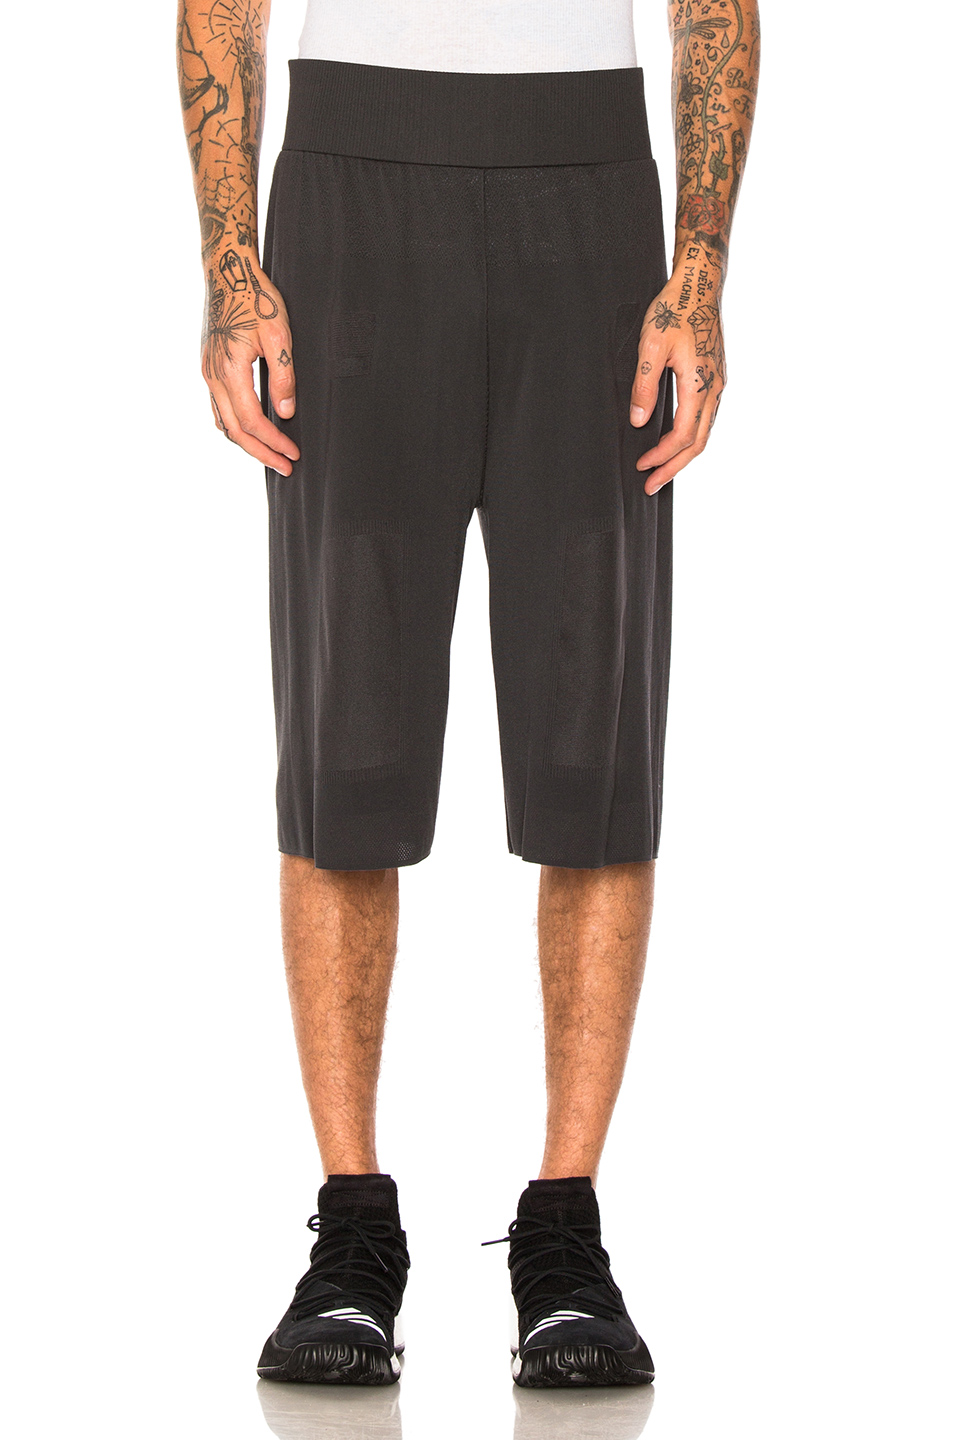 adidas Day One Seamless Shorts in Gray